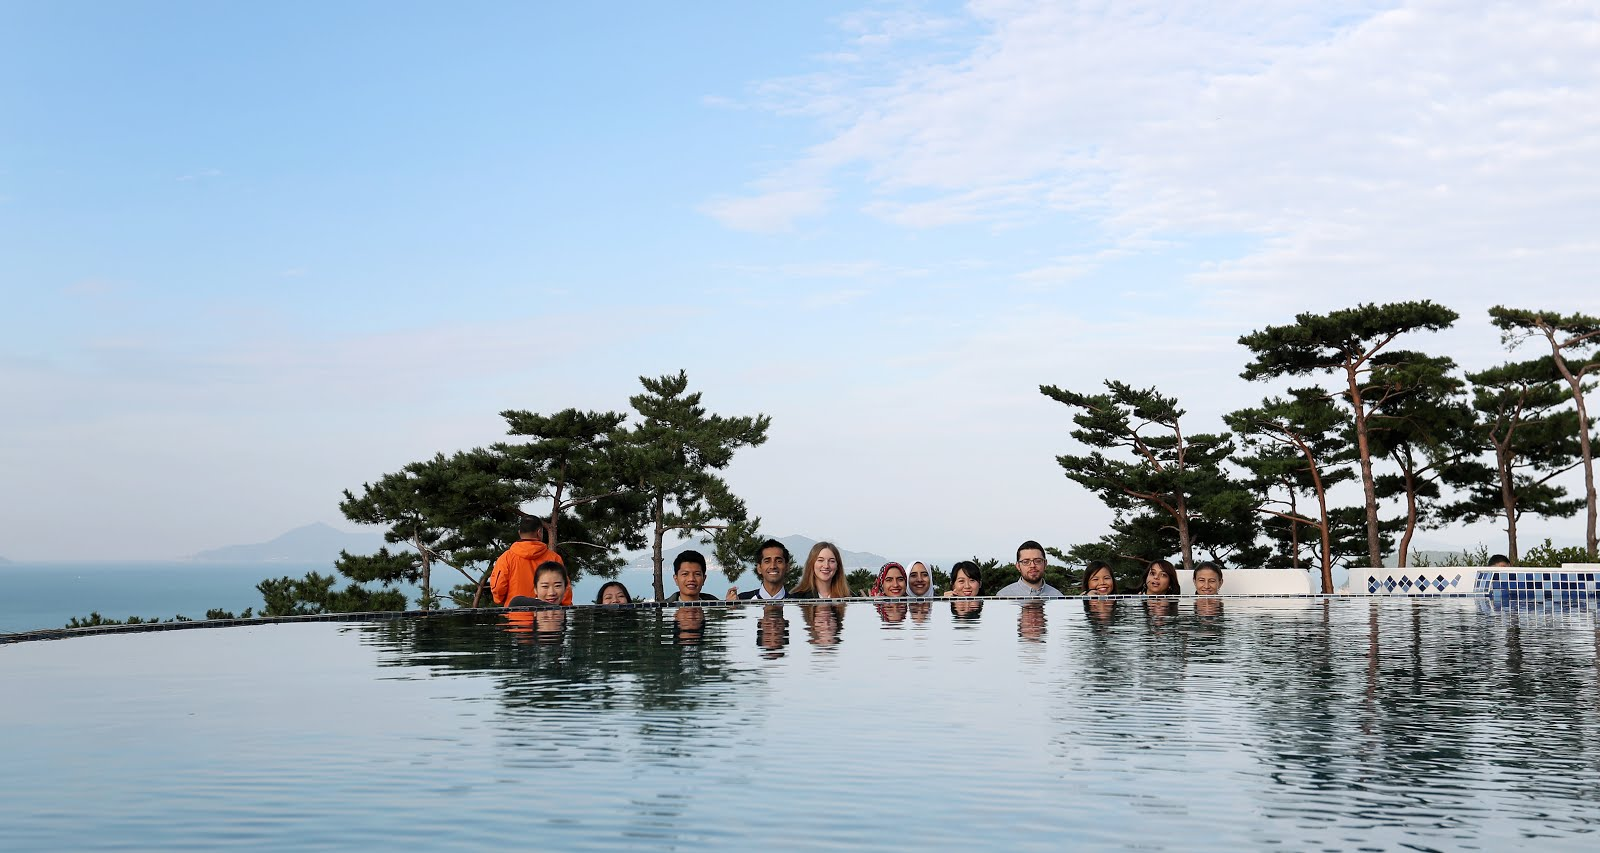 Beautiful memories with fellow Korea.net honorary reporters in the picturesque ES Club Resort.